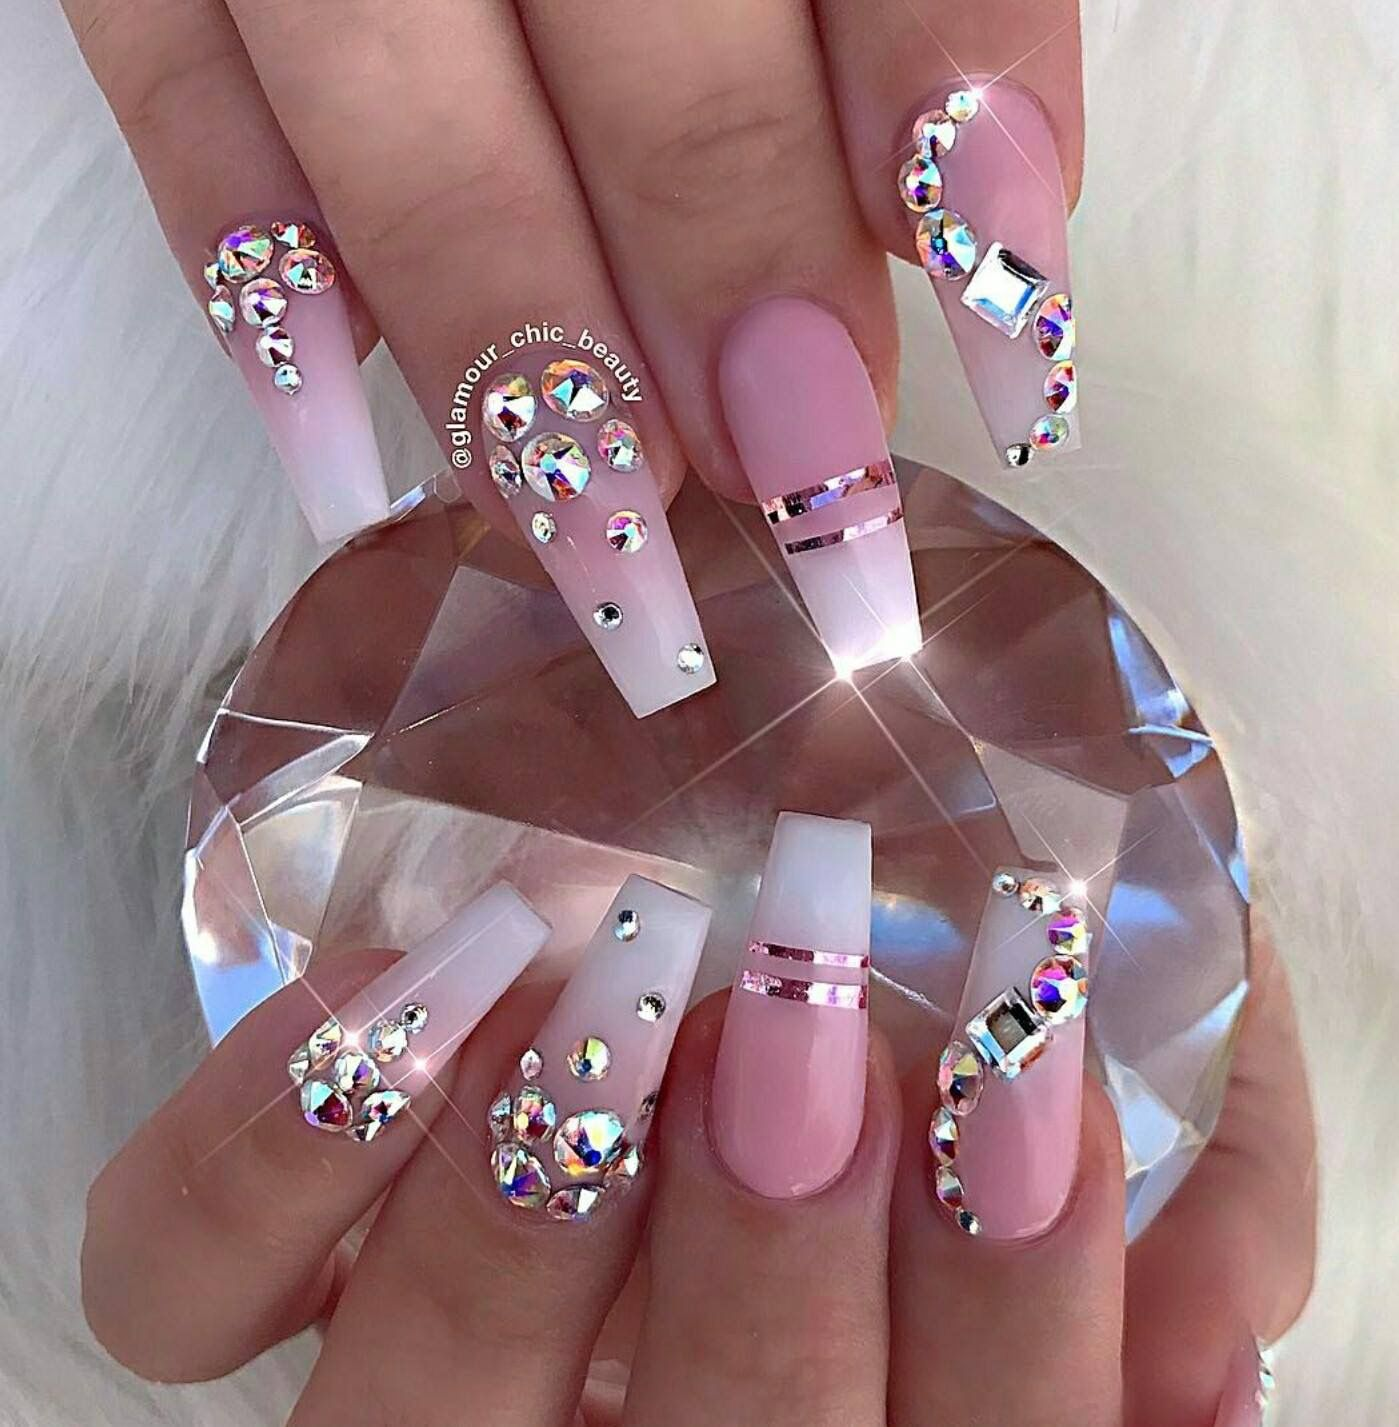 Pin by Taquita Reynolds on Nail inspiration | Pinterest | Make up ...